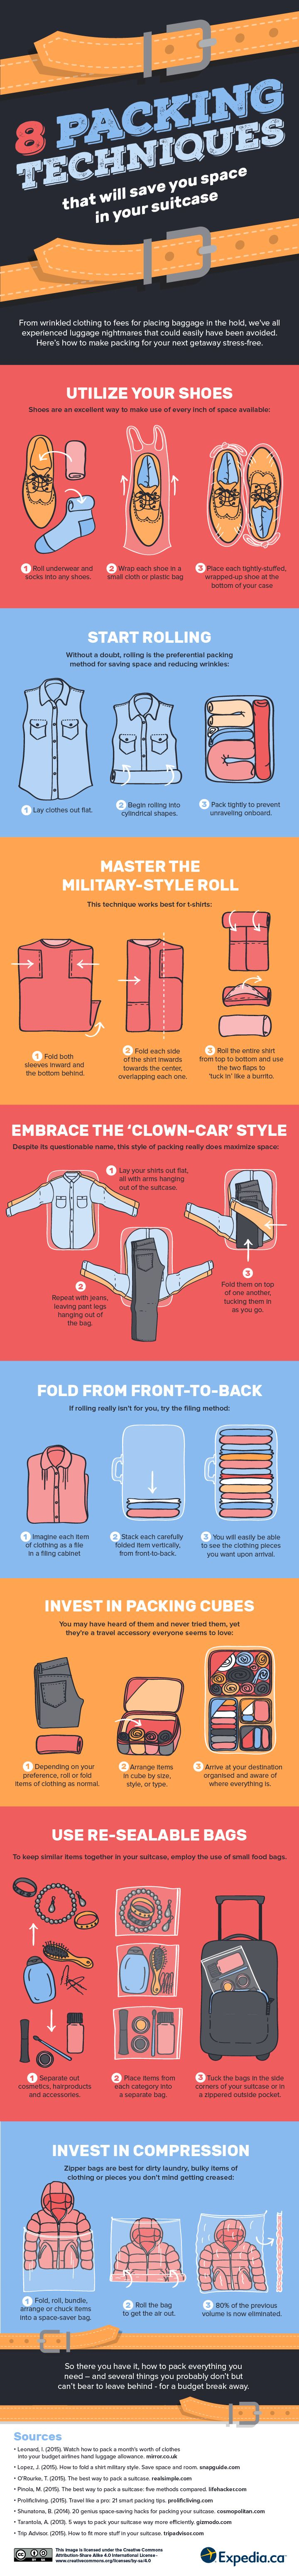 Travel company weighs in on the best ways to pack